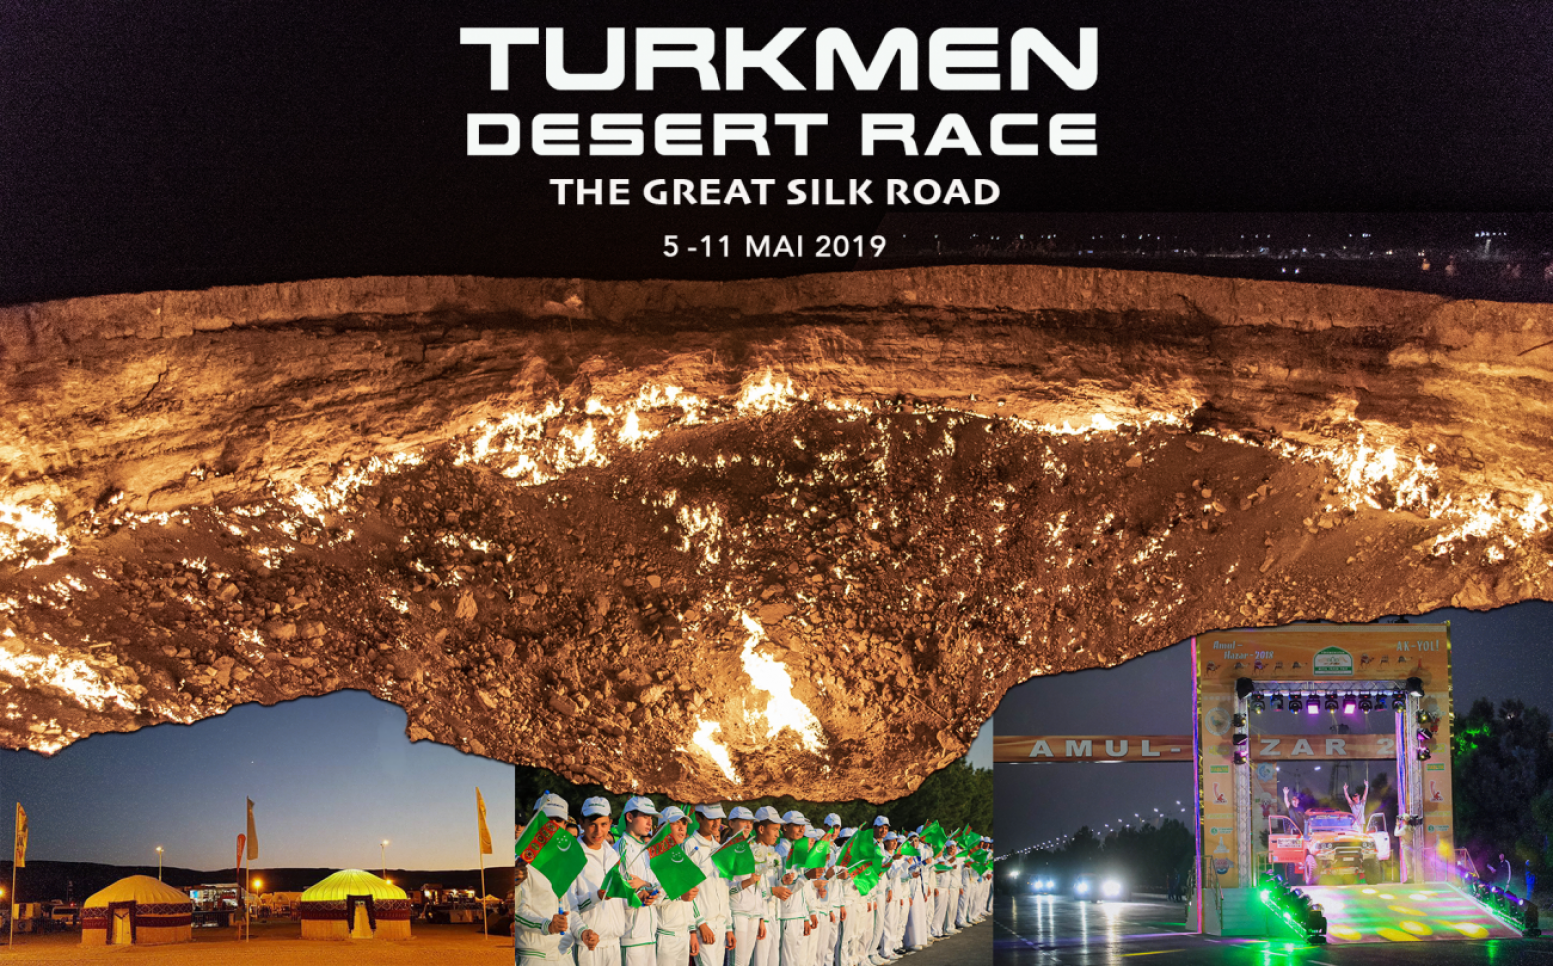 Turkmen Desert Race : les dates 2019